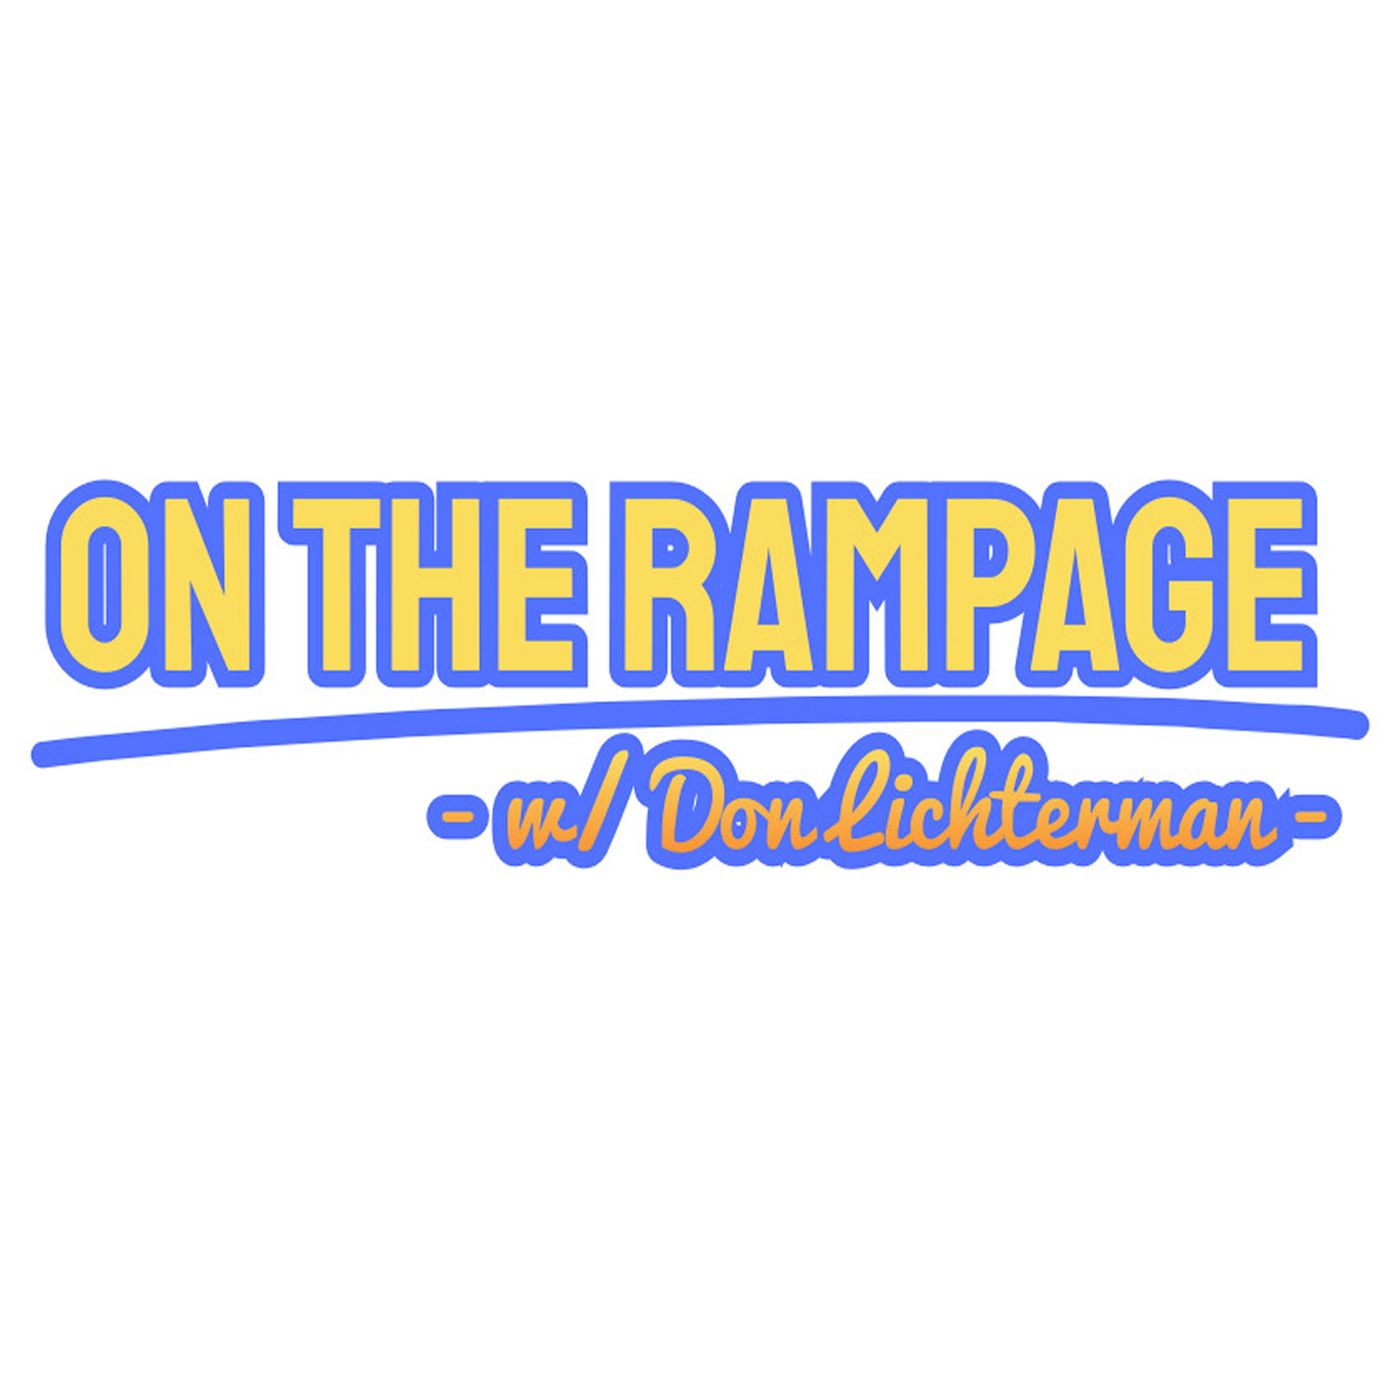 On The Rampage w/ Don Lichterman, Trump's America, How Whites get arrested & How Blacks get arrested